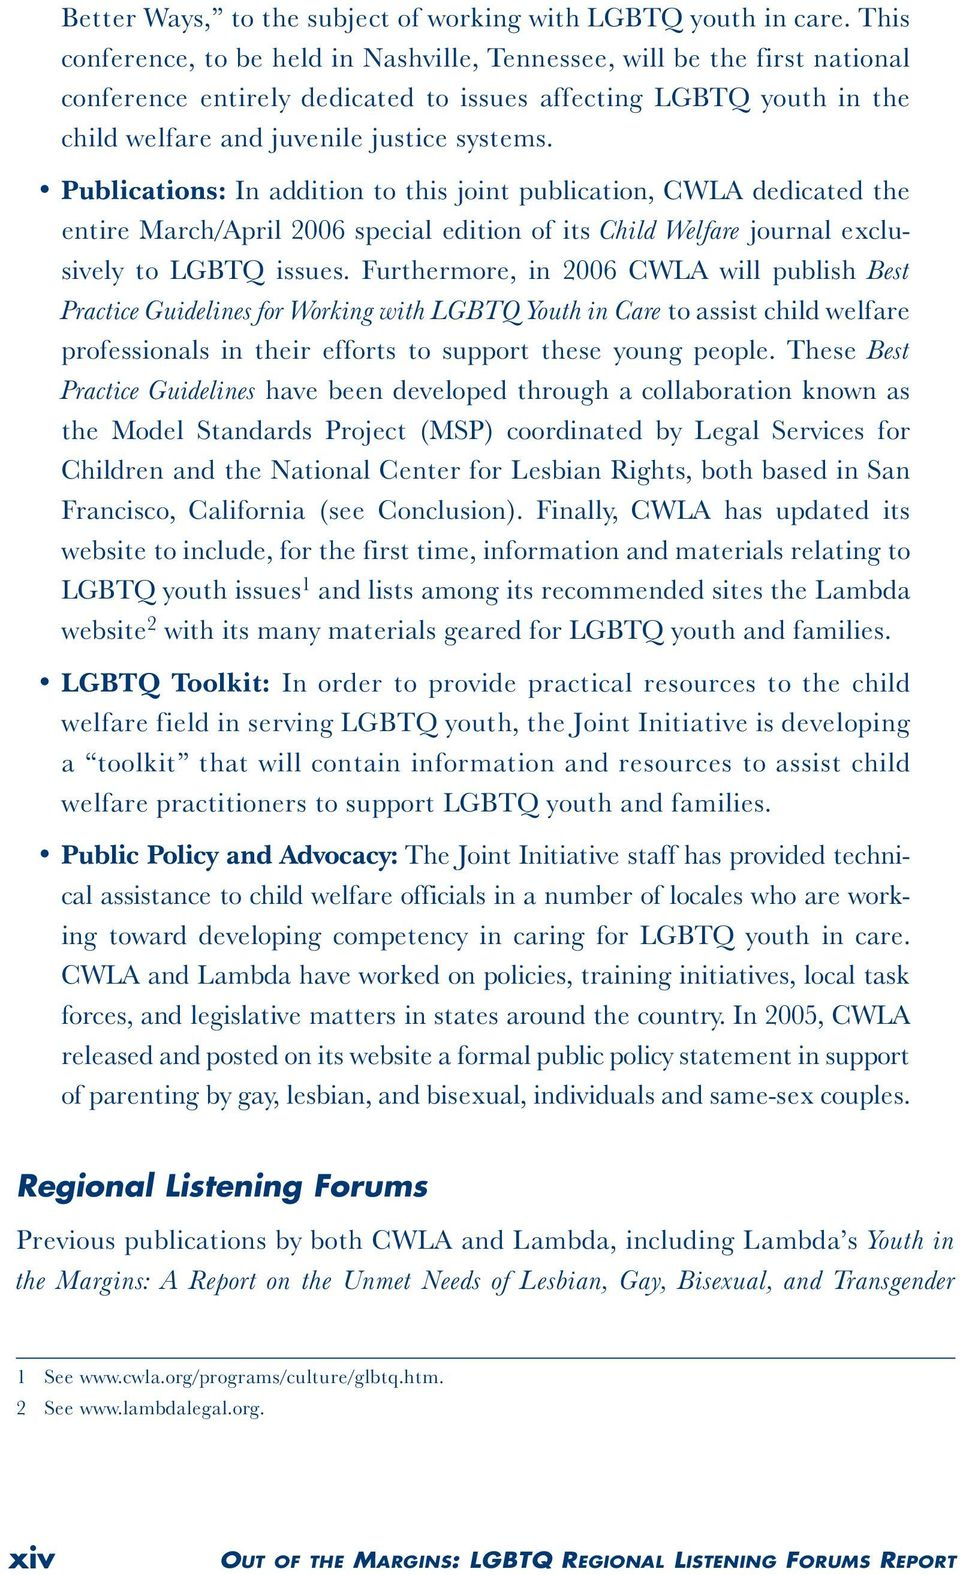 Publications: In addition to this joint publication, CWLA dedicated the entire March/April 2006 special edition of its Child Welfare journal exclusively to LGBTQ issues.